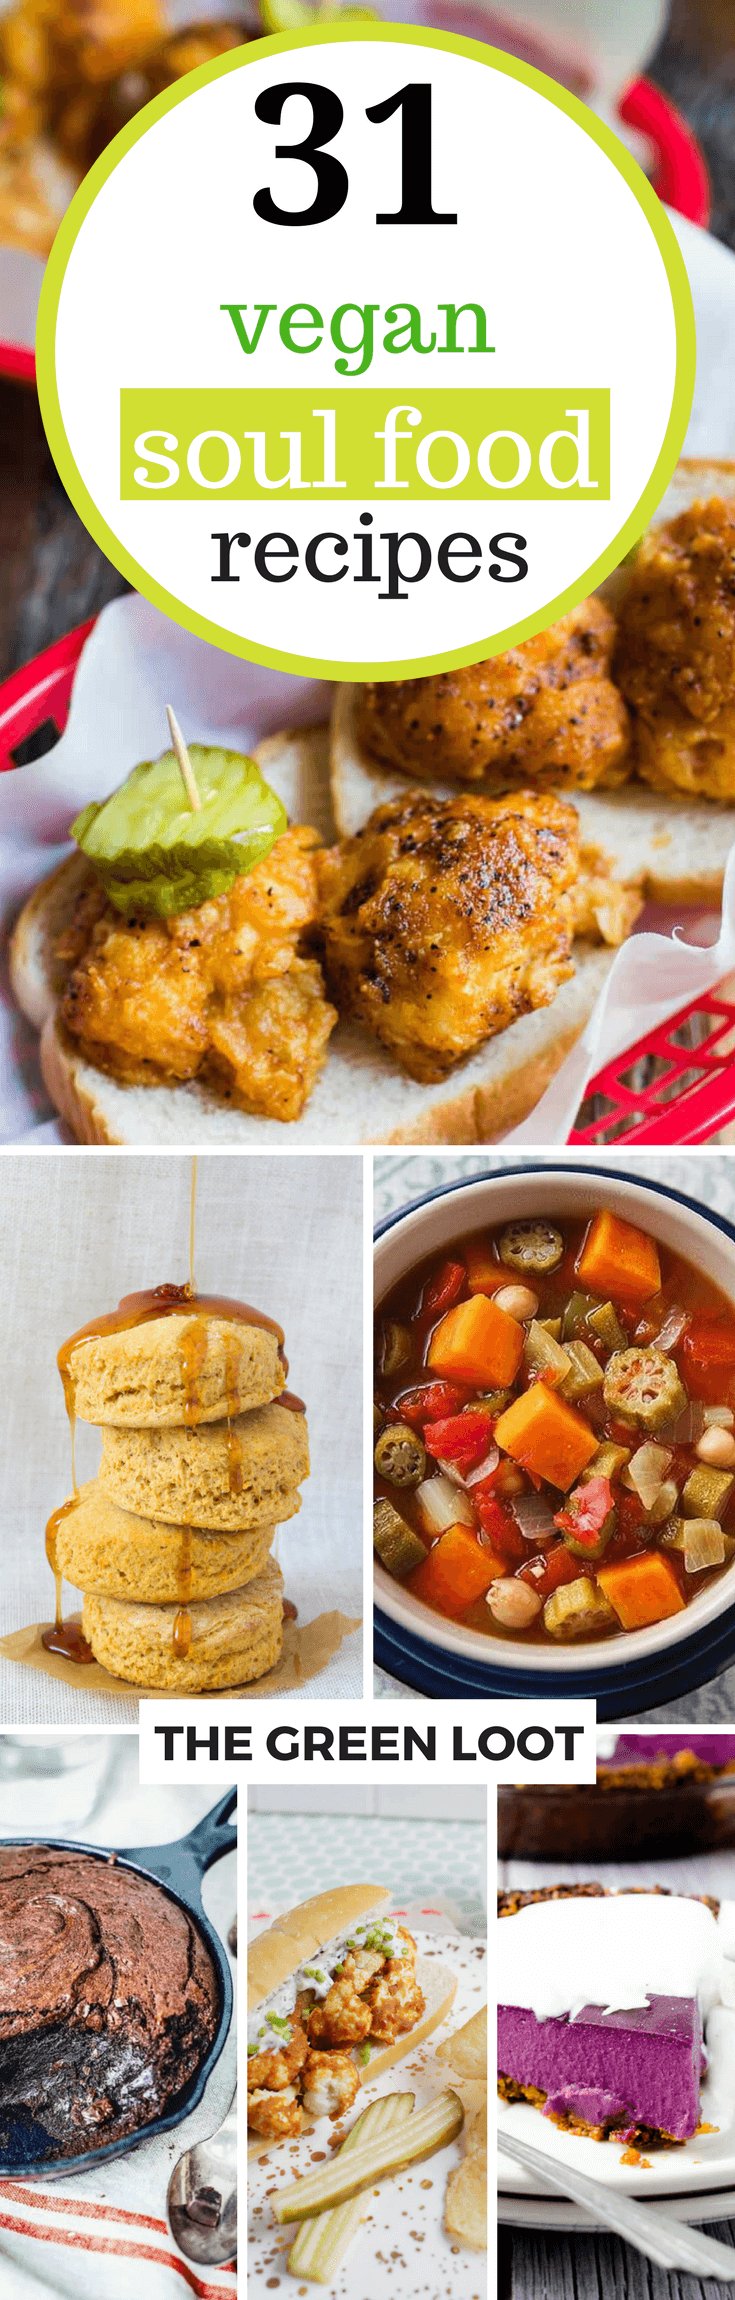 These vegan soul food recipes make the best easy healthy plant these vegan soul food recipes make the best easy healthy plant based forumfinder Image collections